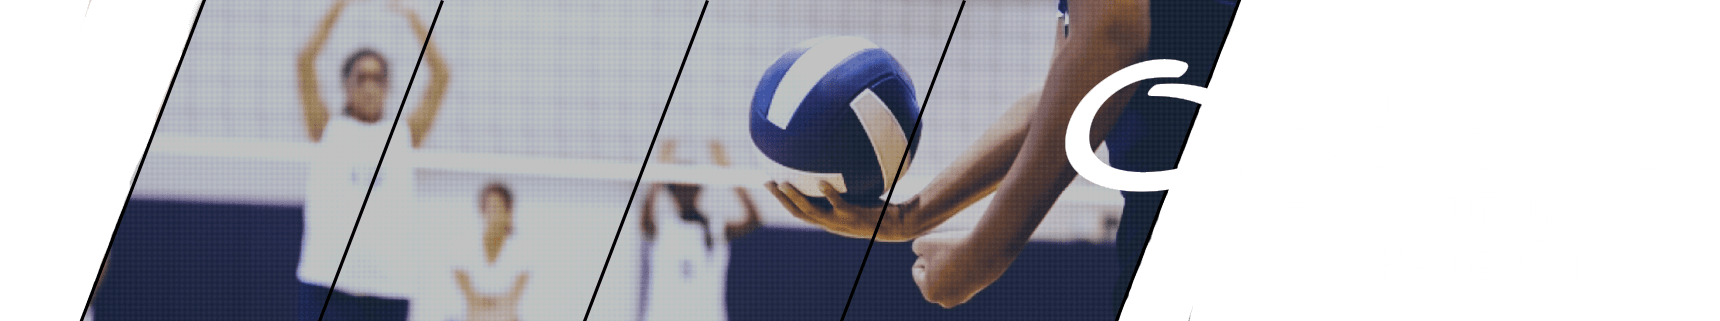 websitebanner_volleyball